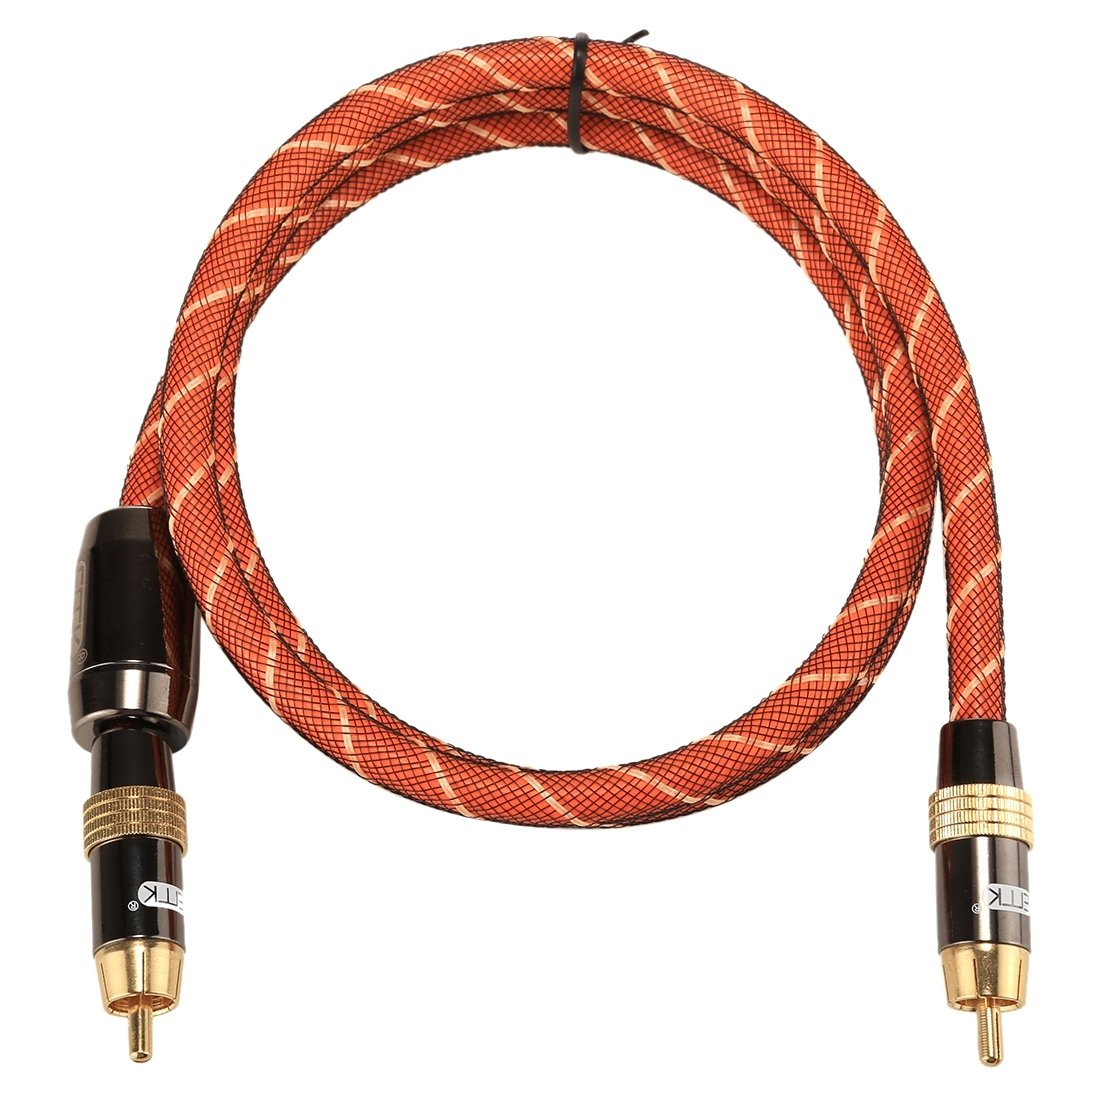 Adaptadores de Audio, TZ/A 1 m OD8.0mm chapado en oro de metal cabeza RCA a RCA enchufe digital Coaxial Cable de interconexión Audio/Video RCA Cable: ...